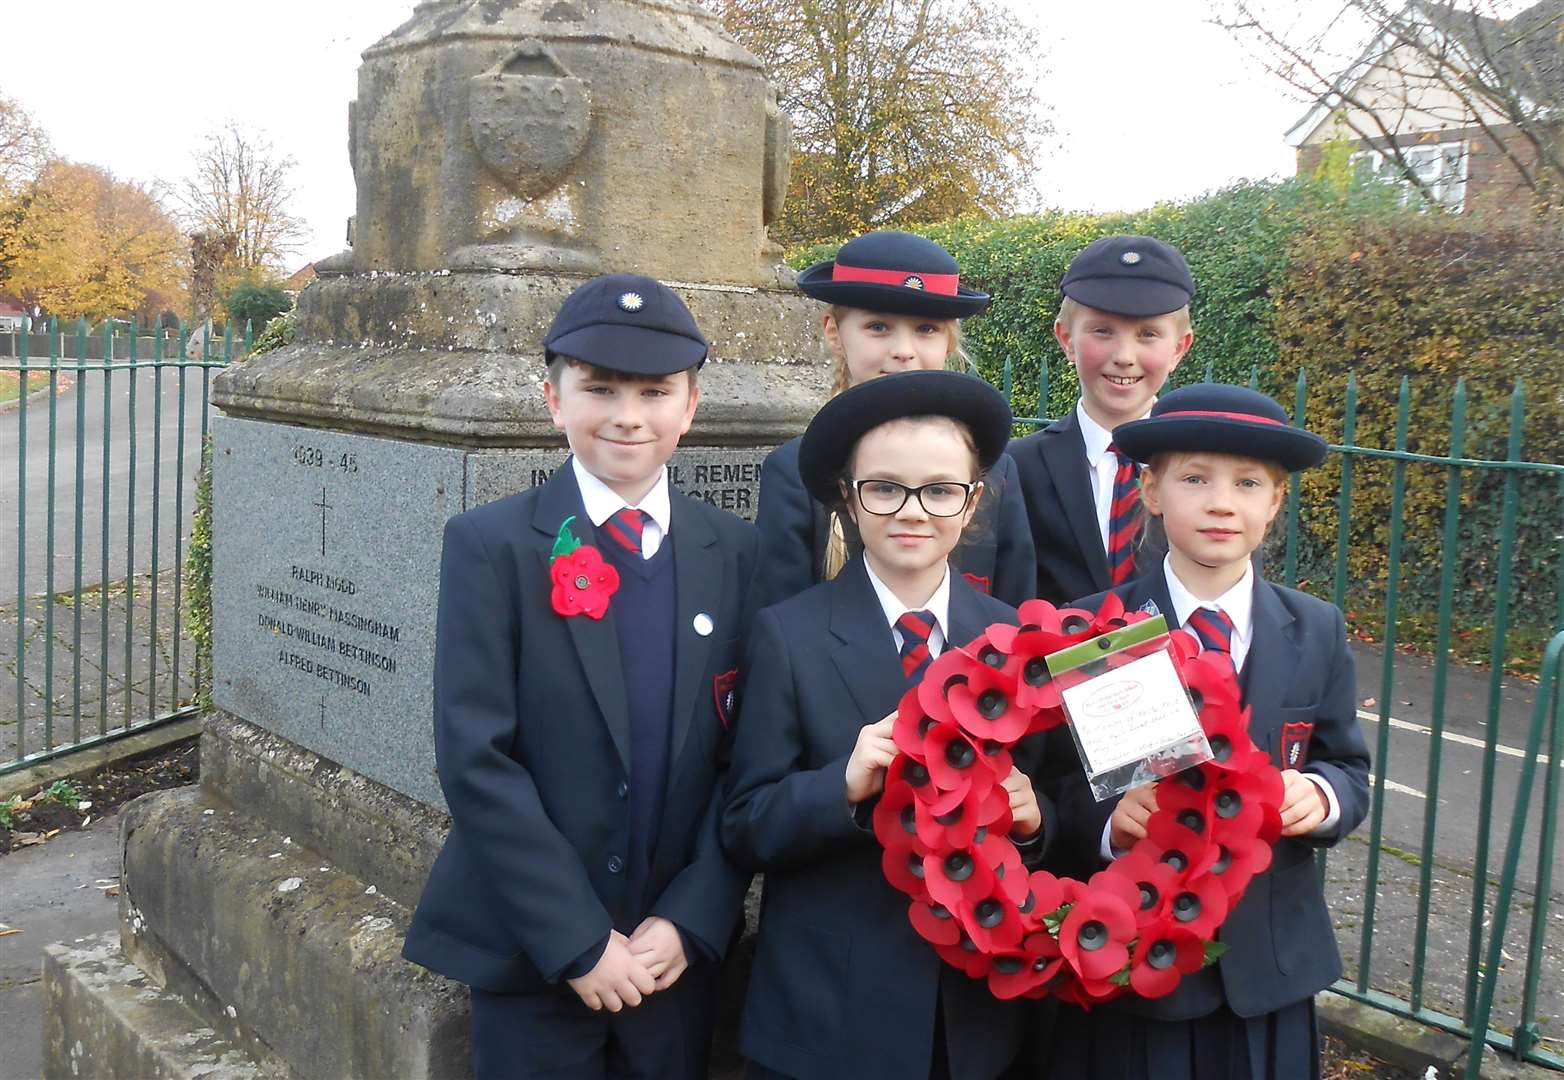 Remembrance activities in Bicker